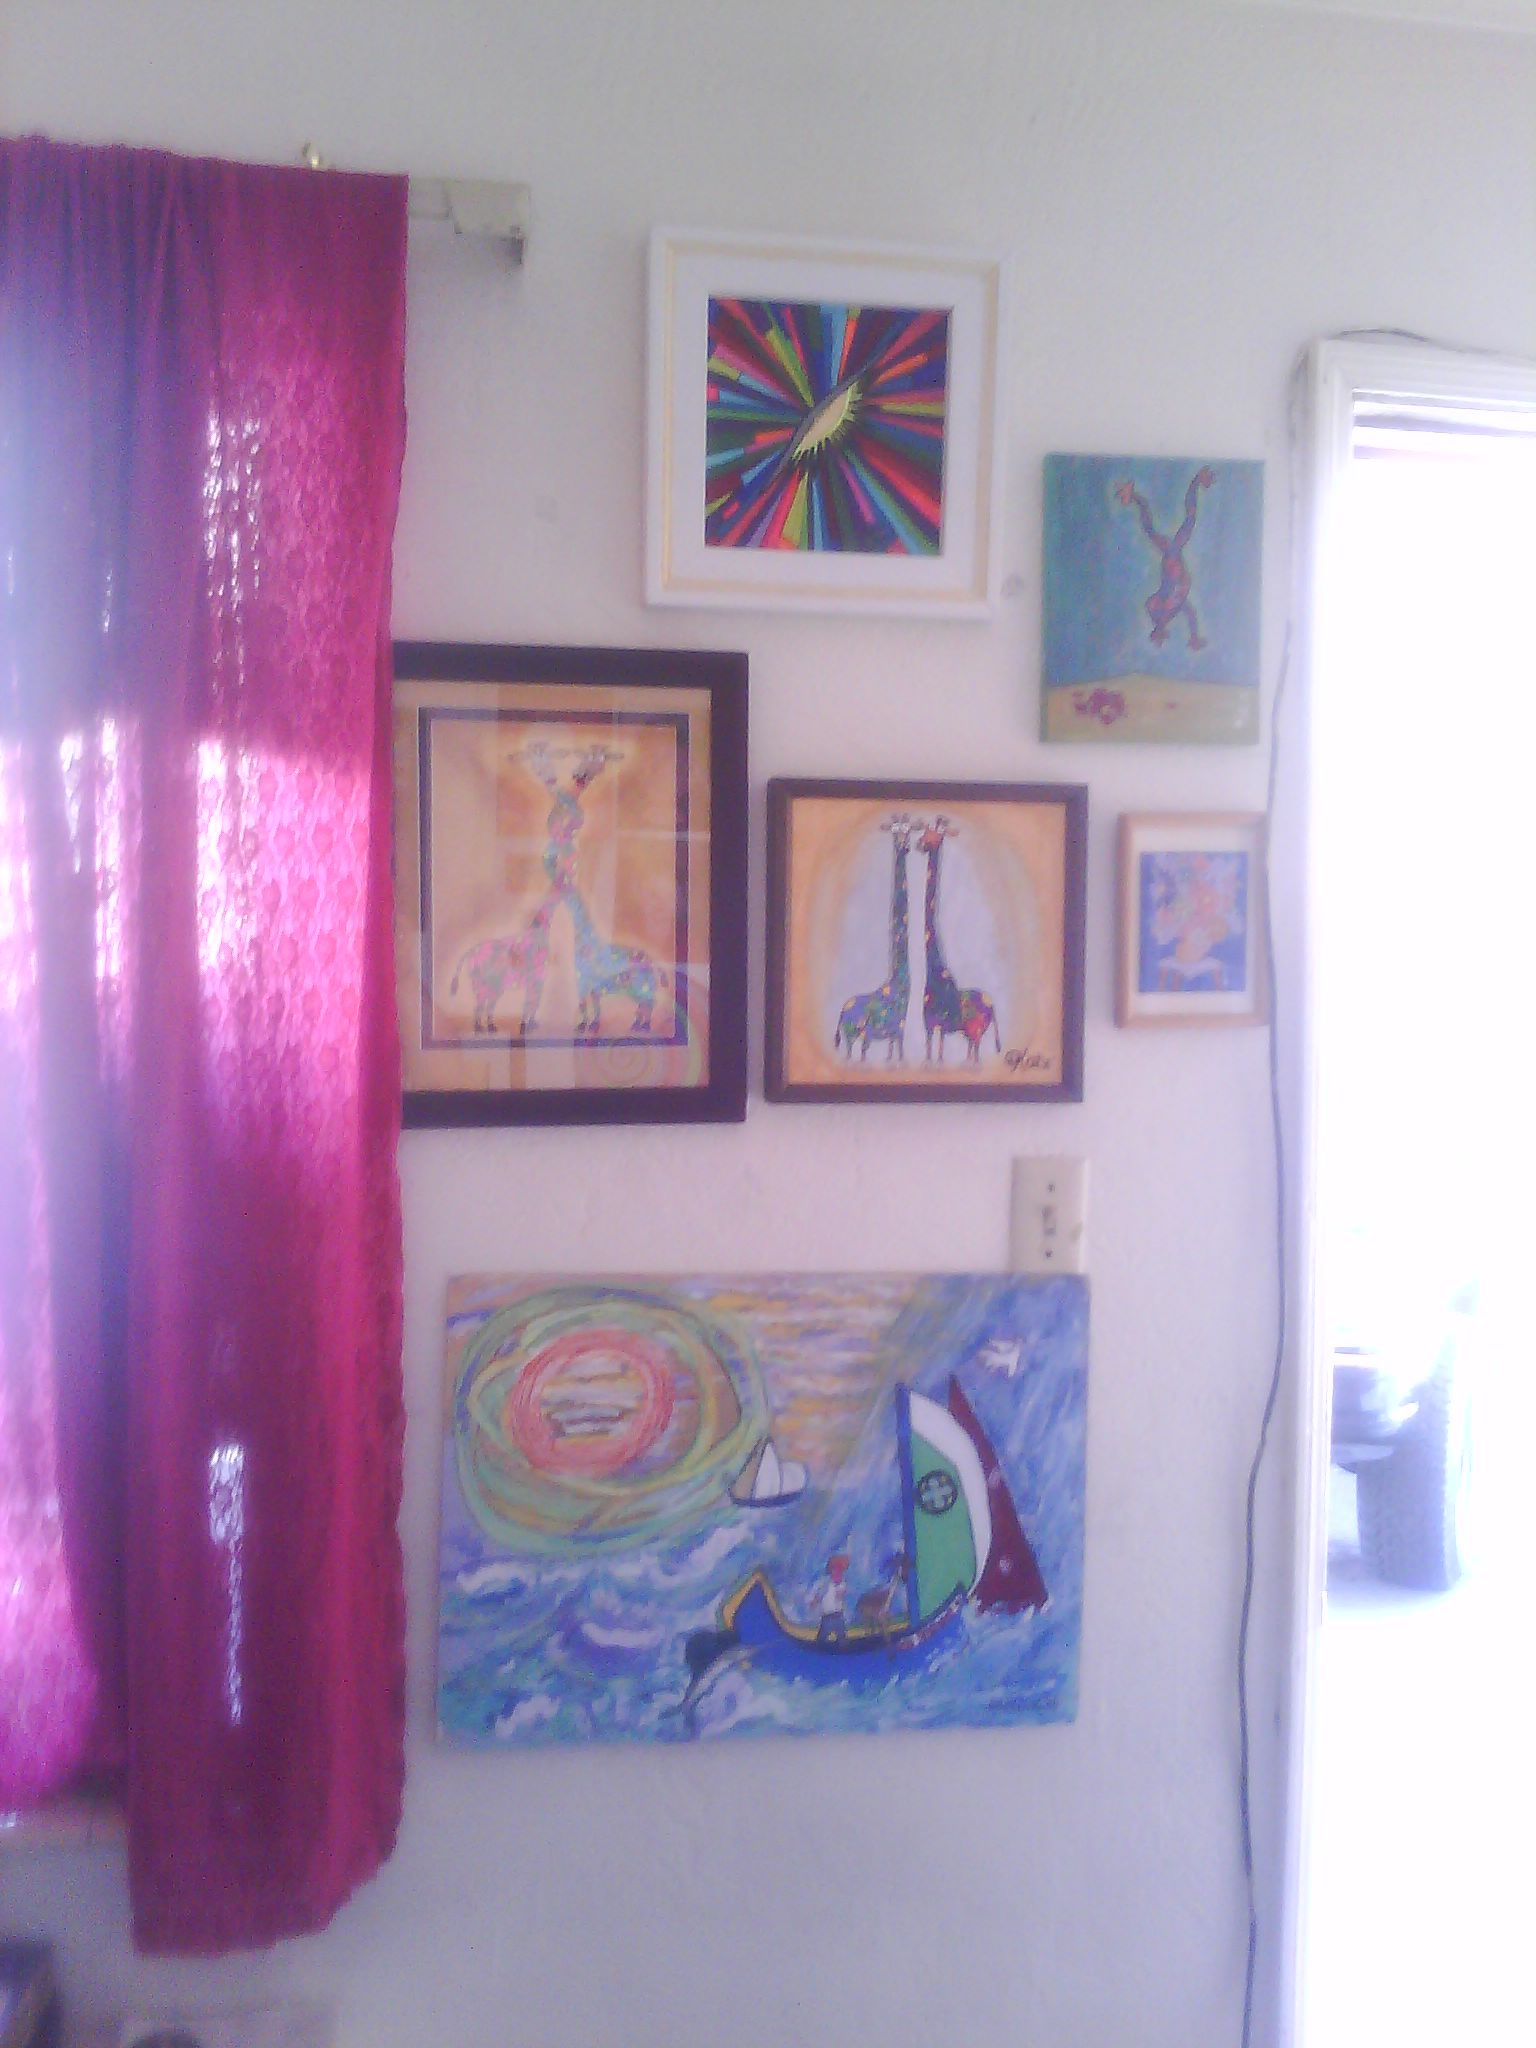 Motel Room Interiors: Another View Inside Our Motel Room At The Rancho Sierra On